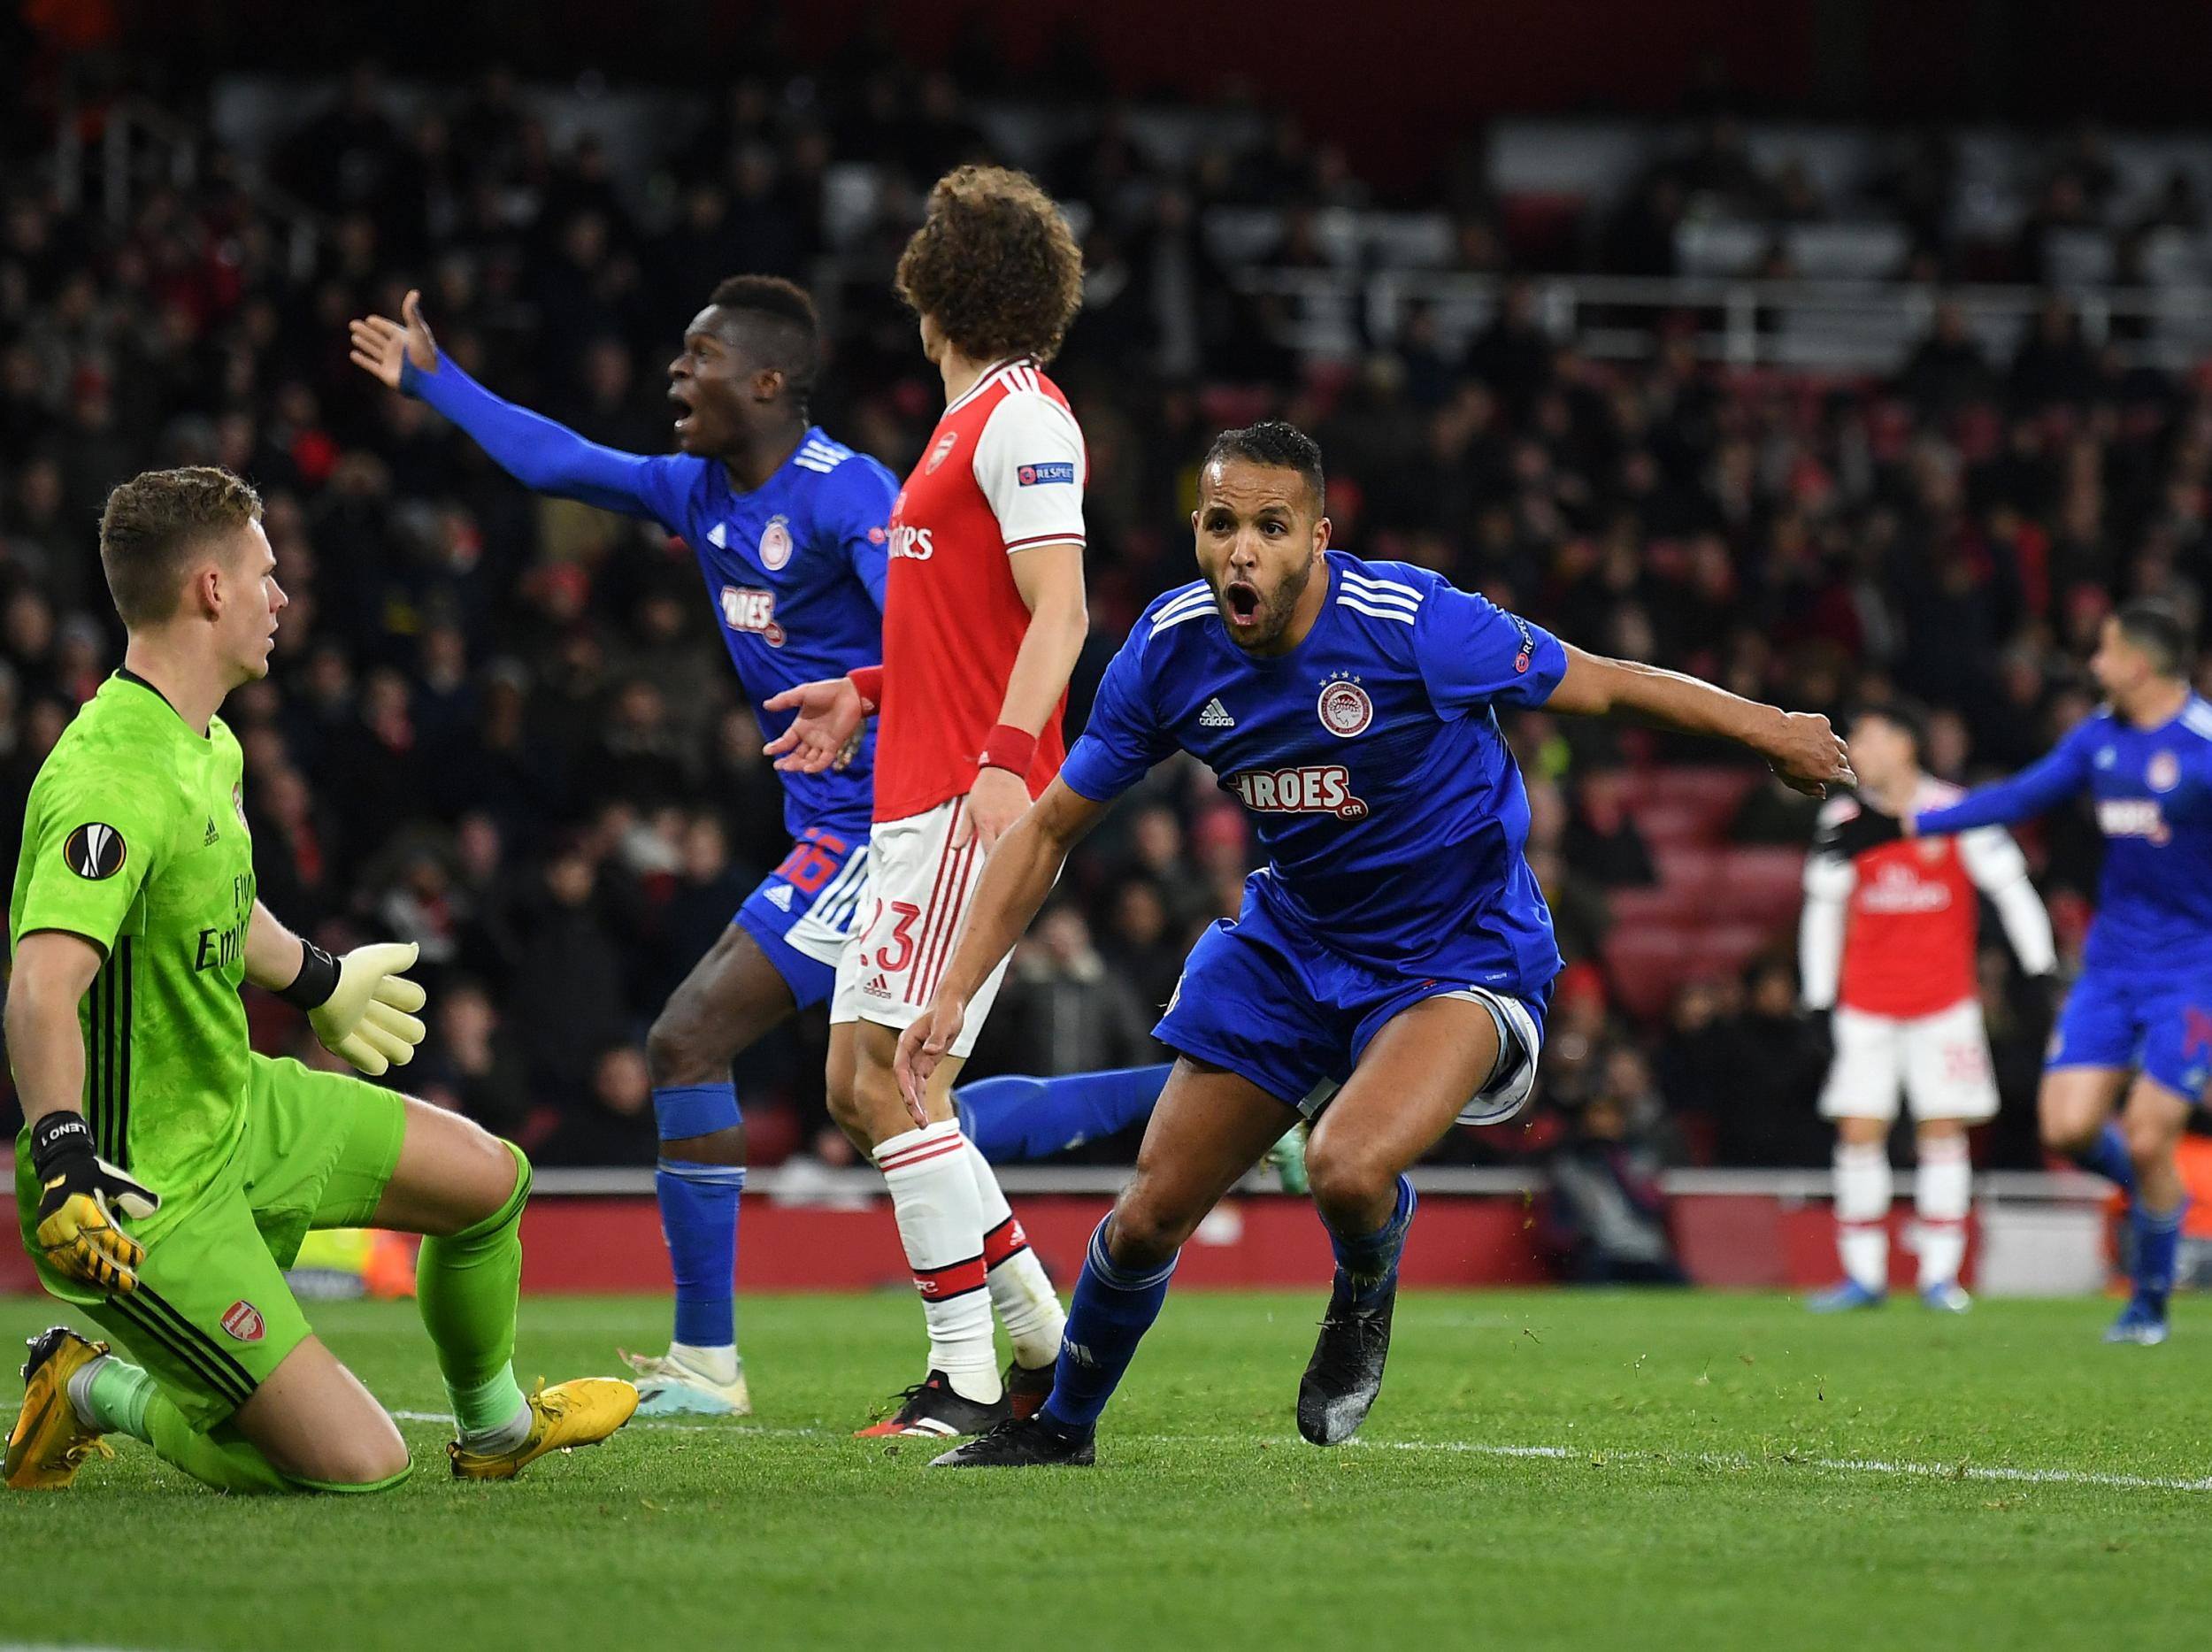 Arsenal suffer extra-time European exit at hands of Olympiacos